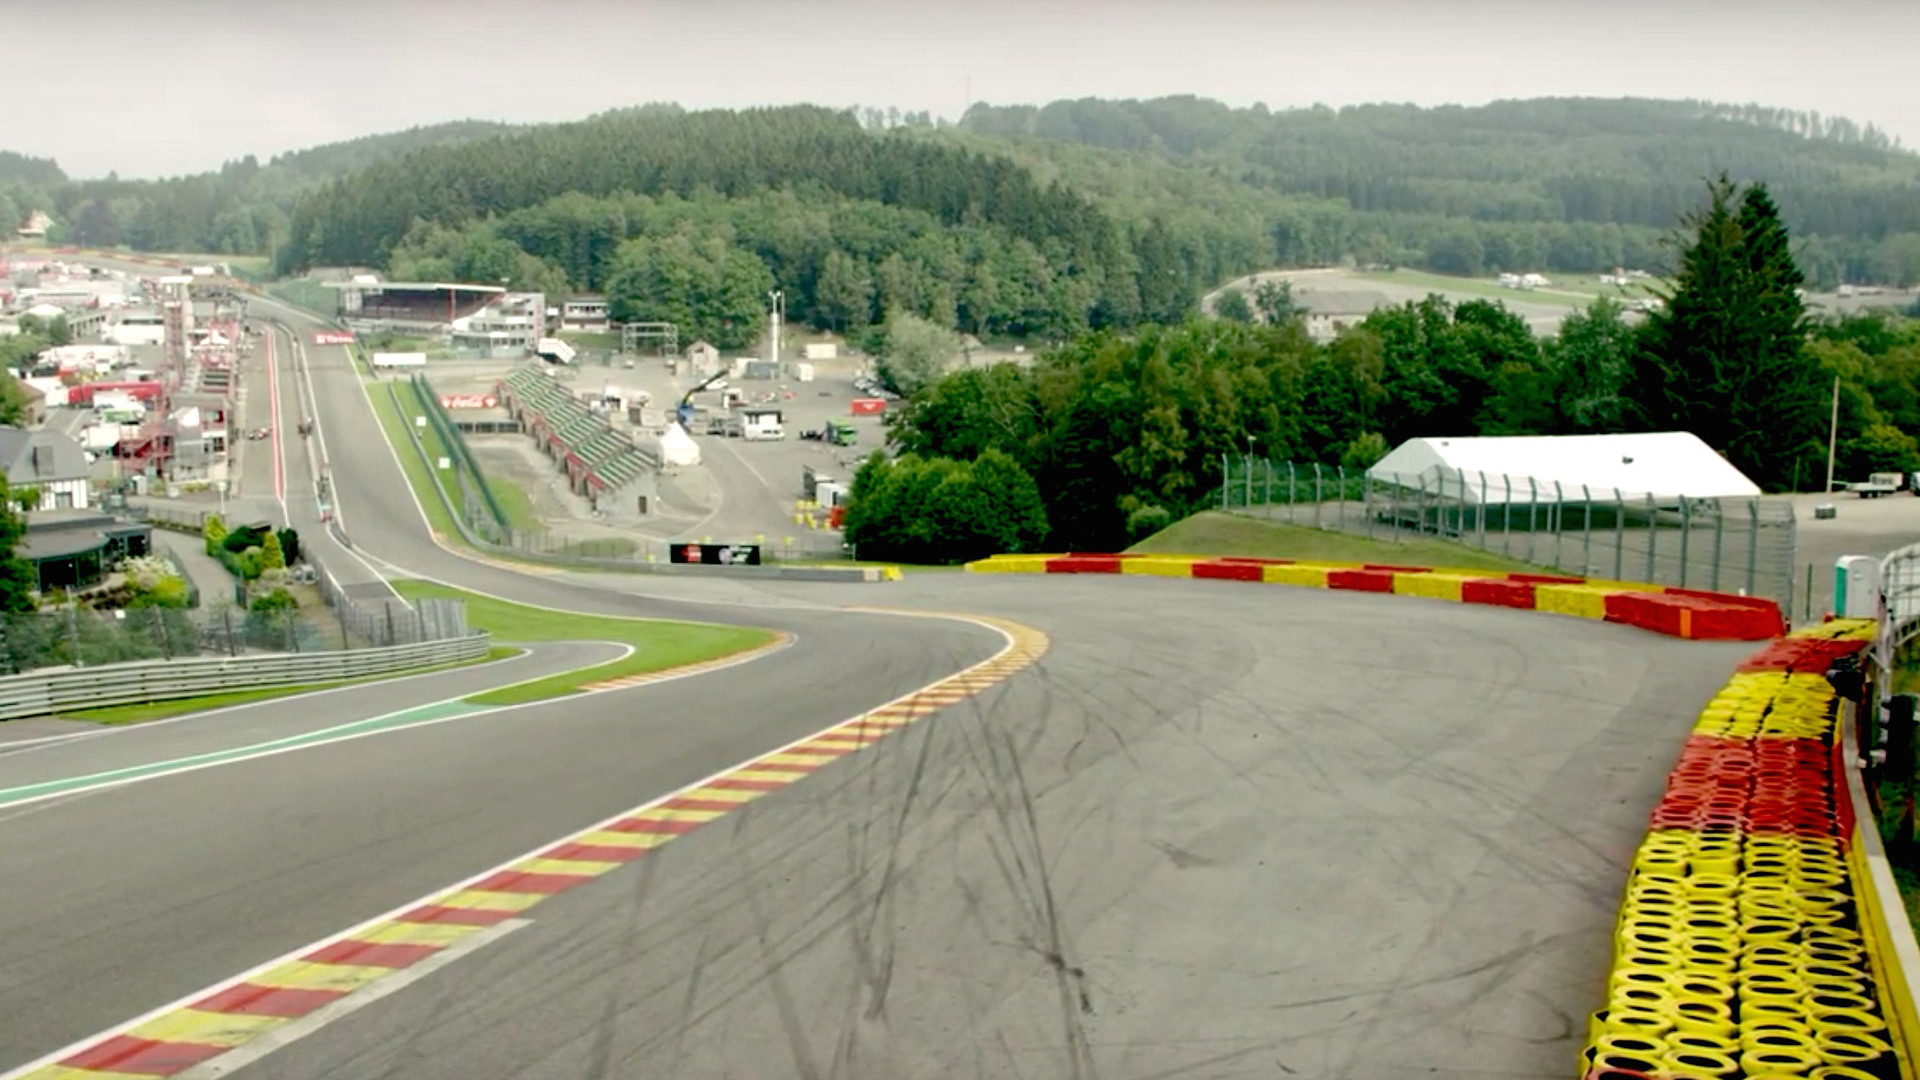 Spa-Francorchamps, home of the Formula 1 Belgian Grand Prix